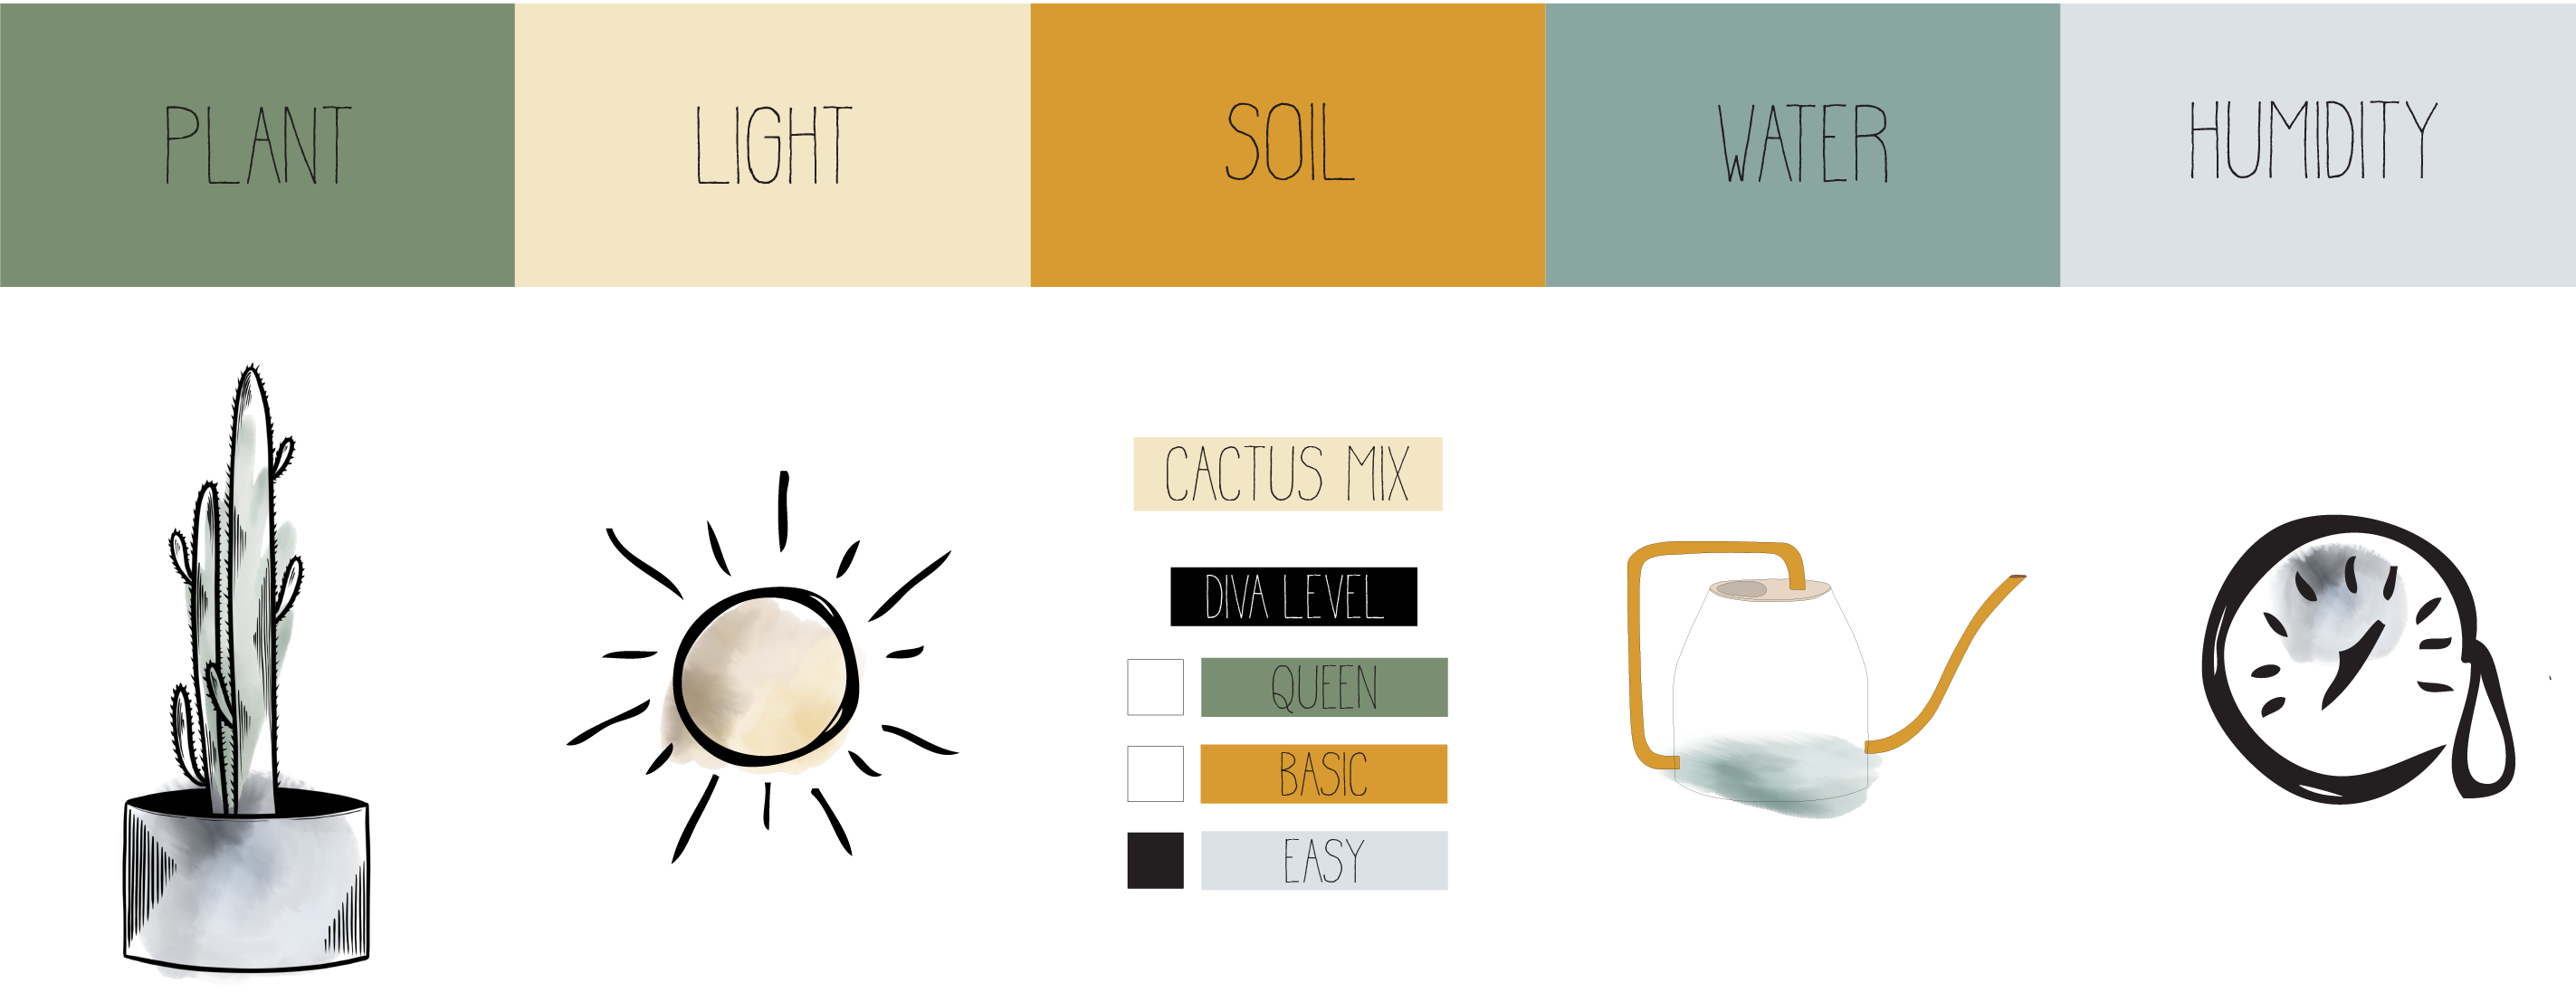 Cactus Care Infographic